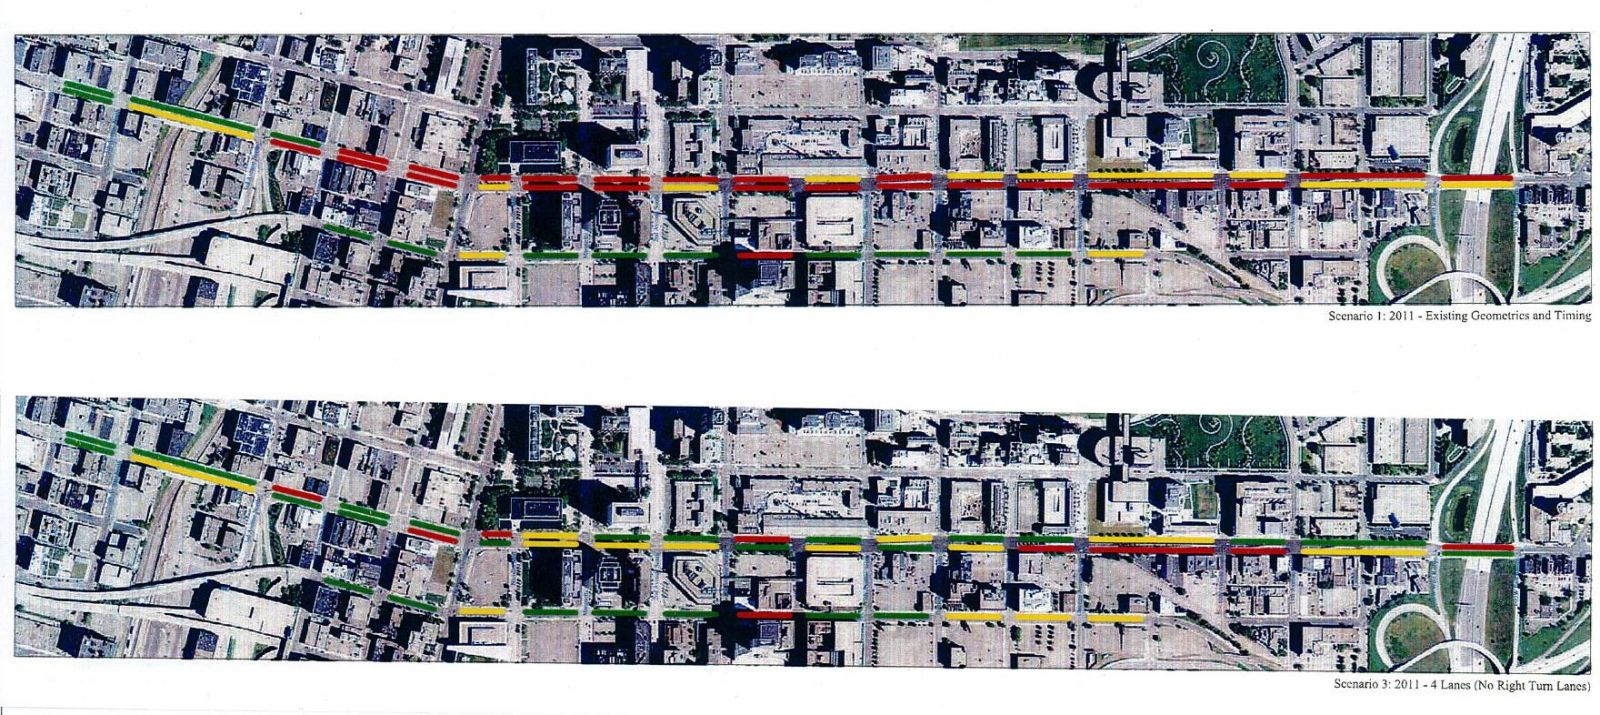 Comparison of traffic flow on Washington - current 7 lanes vs 5 lanes